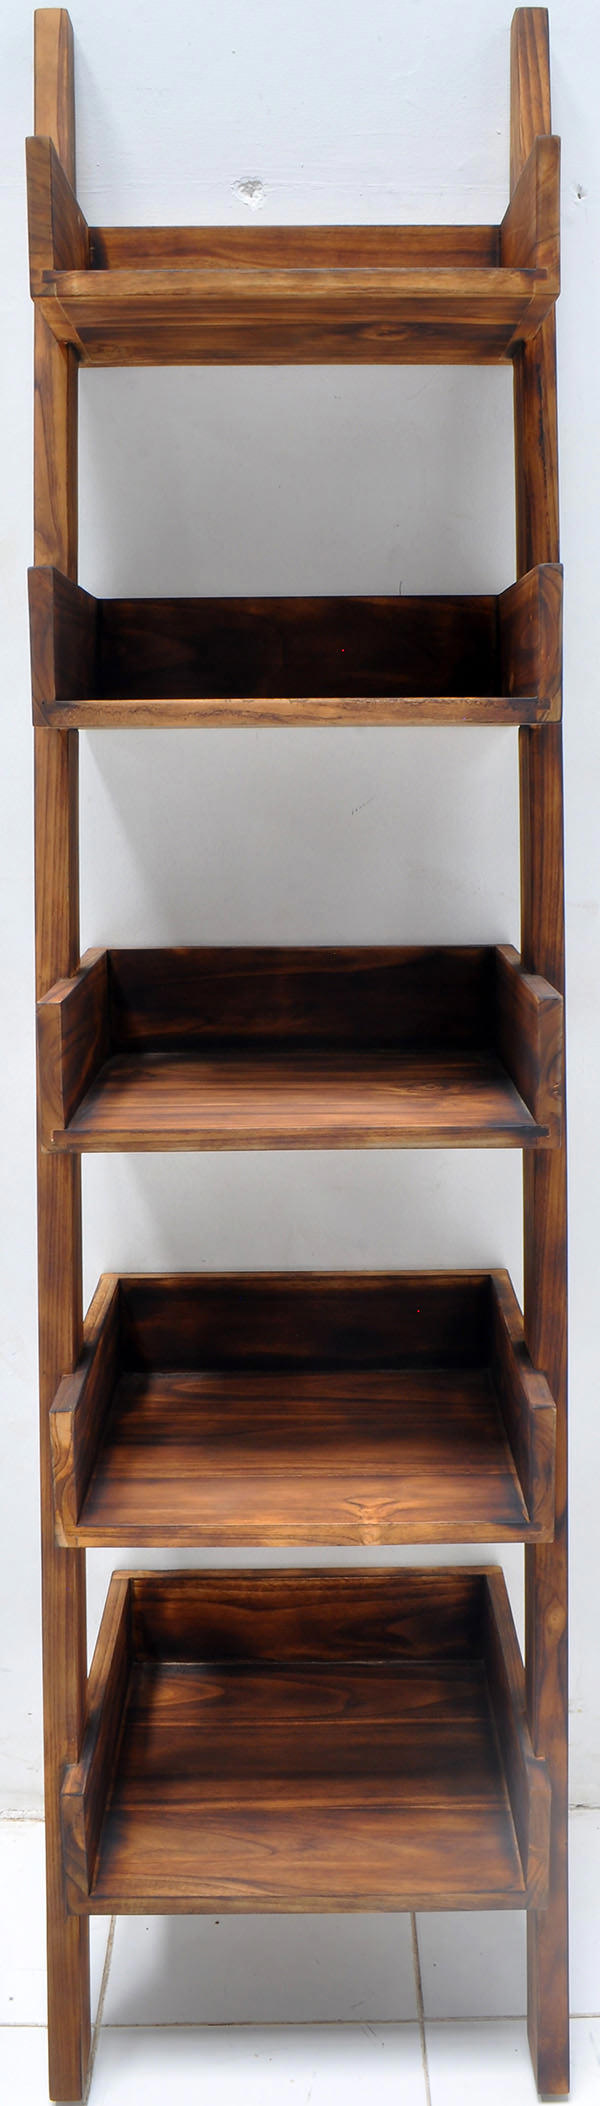 180cm burnt teak wall ladder